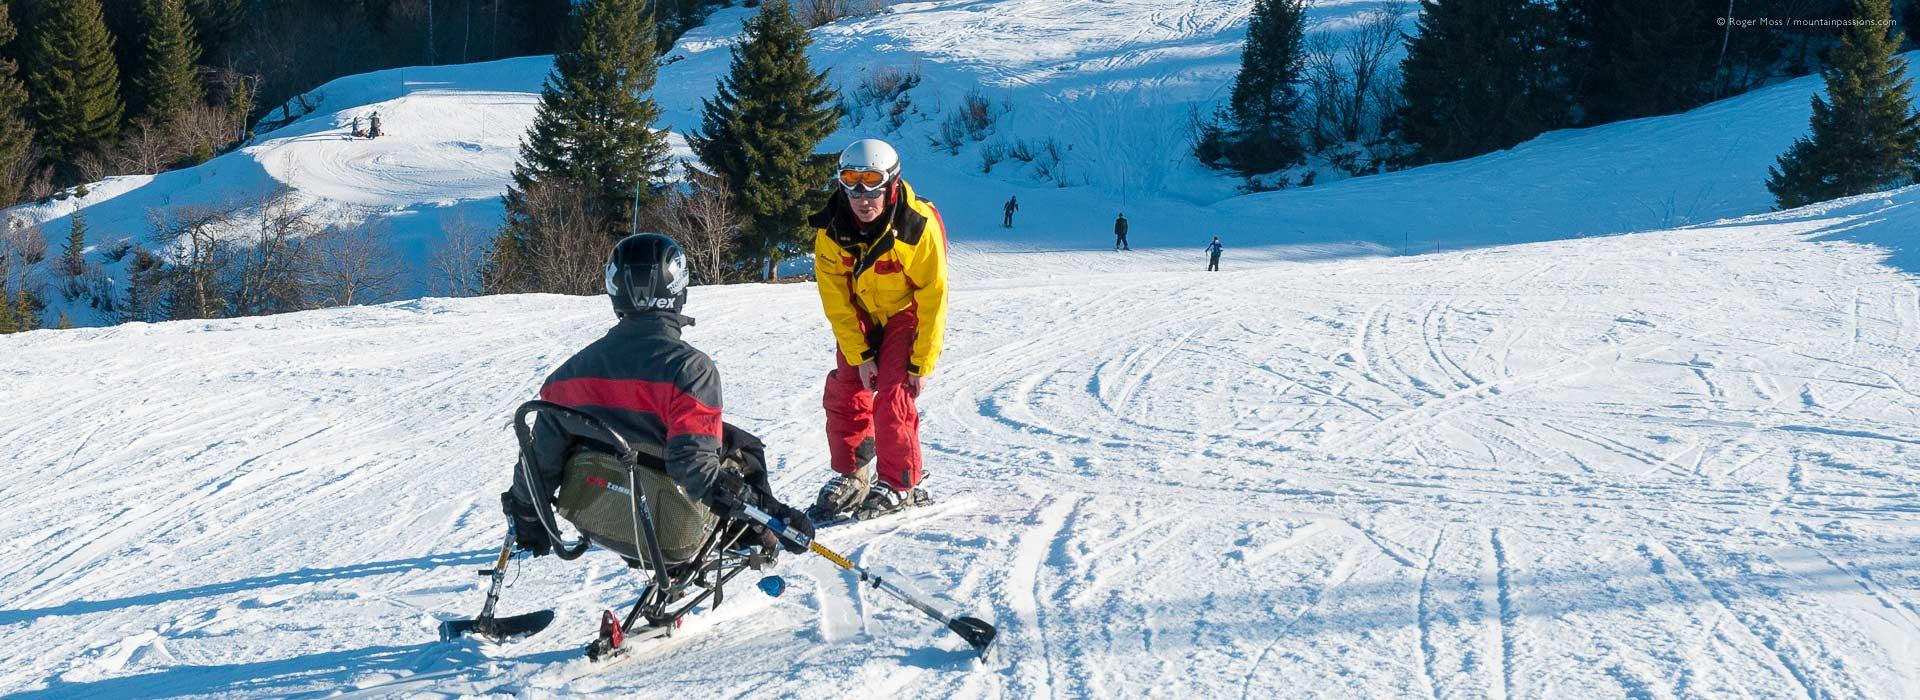 Disability skiing instruction on piste at Les Gets